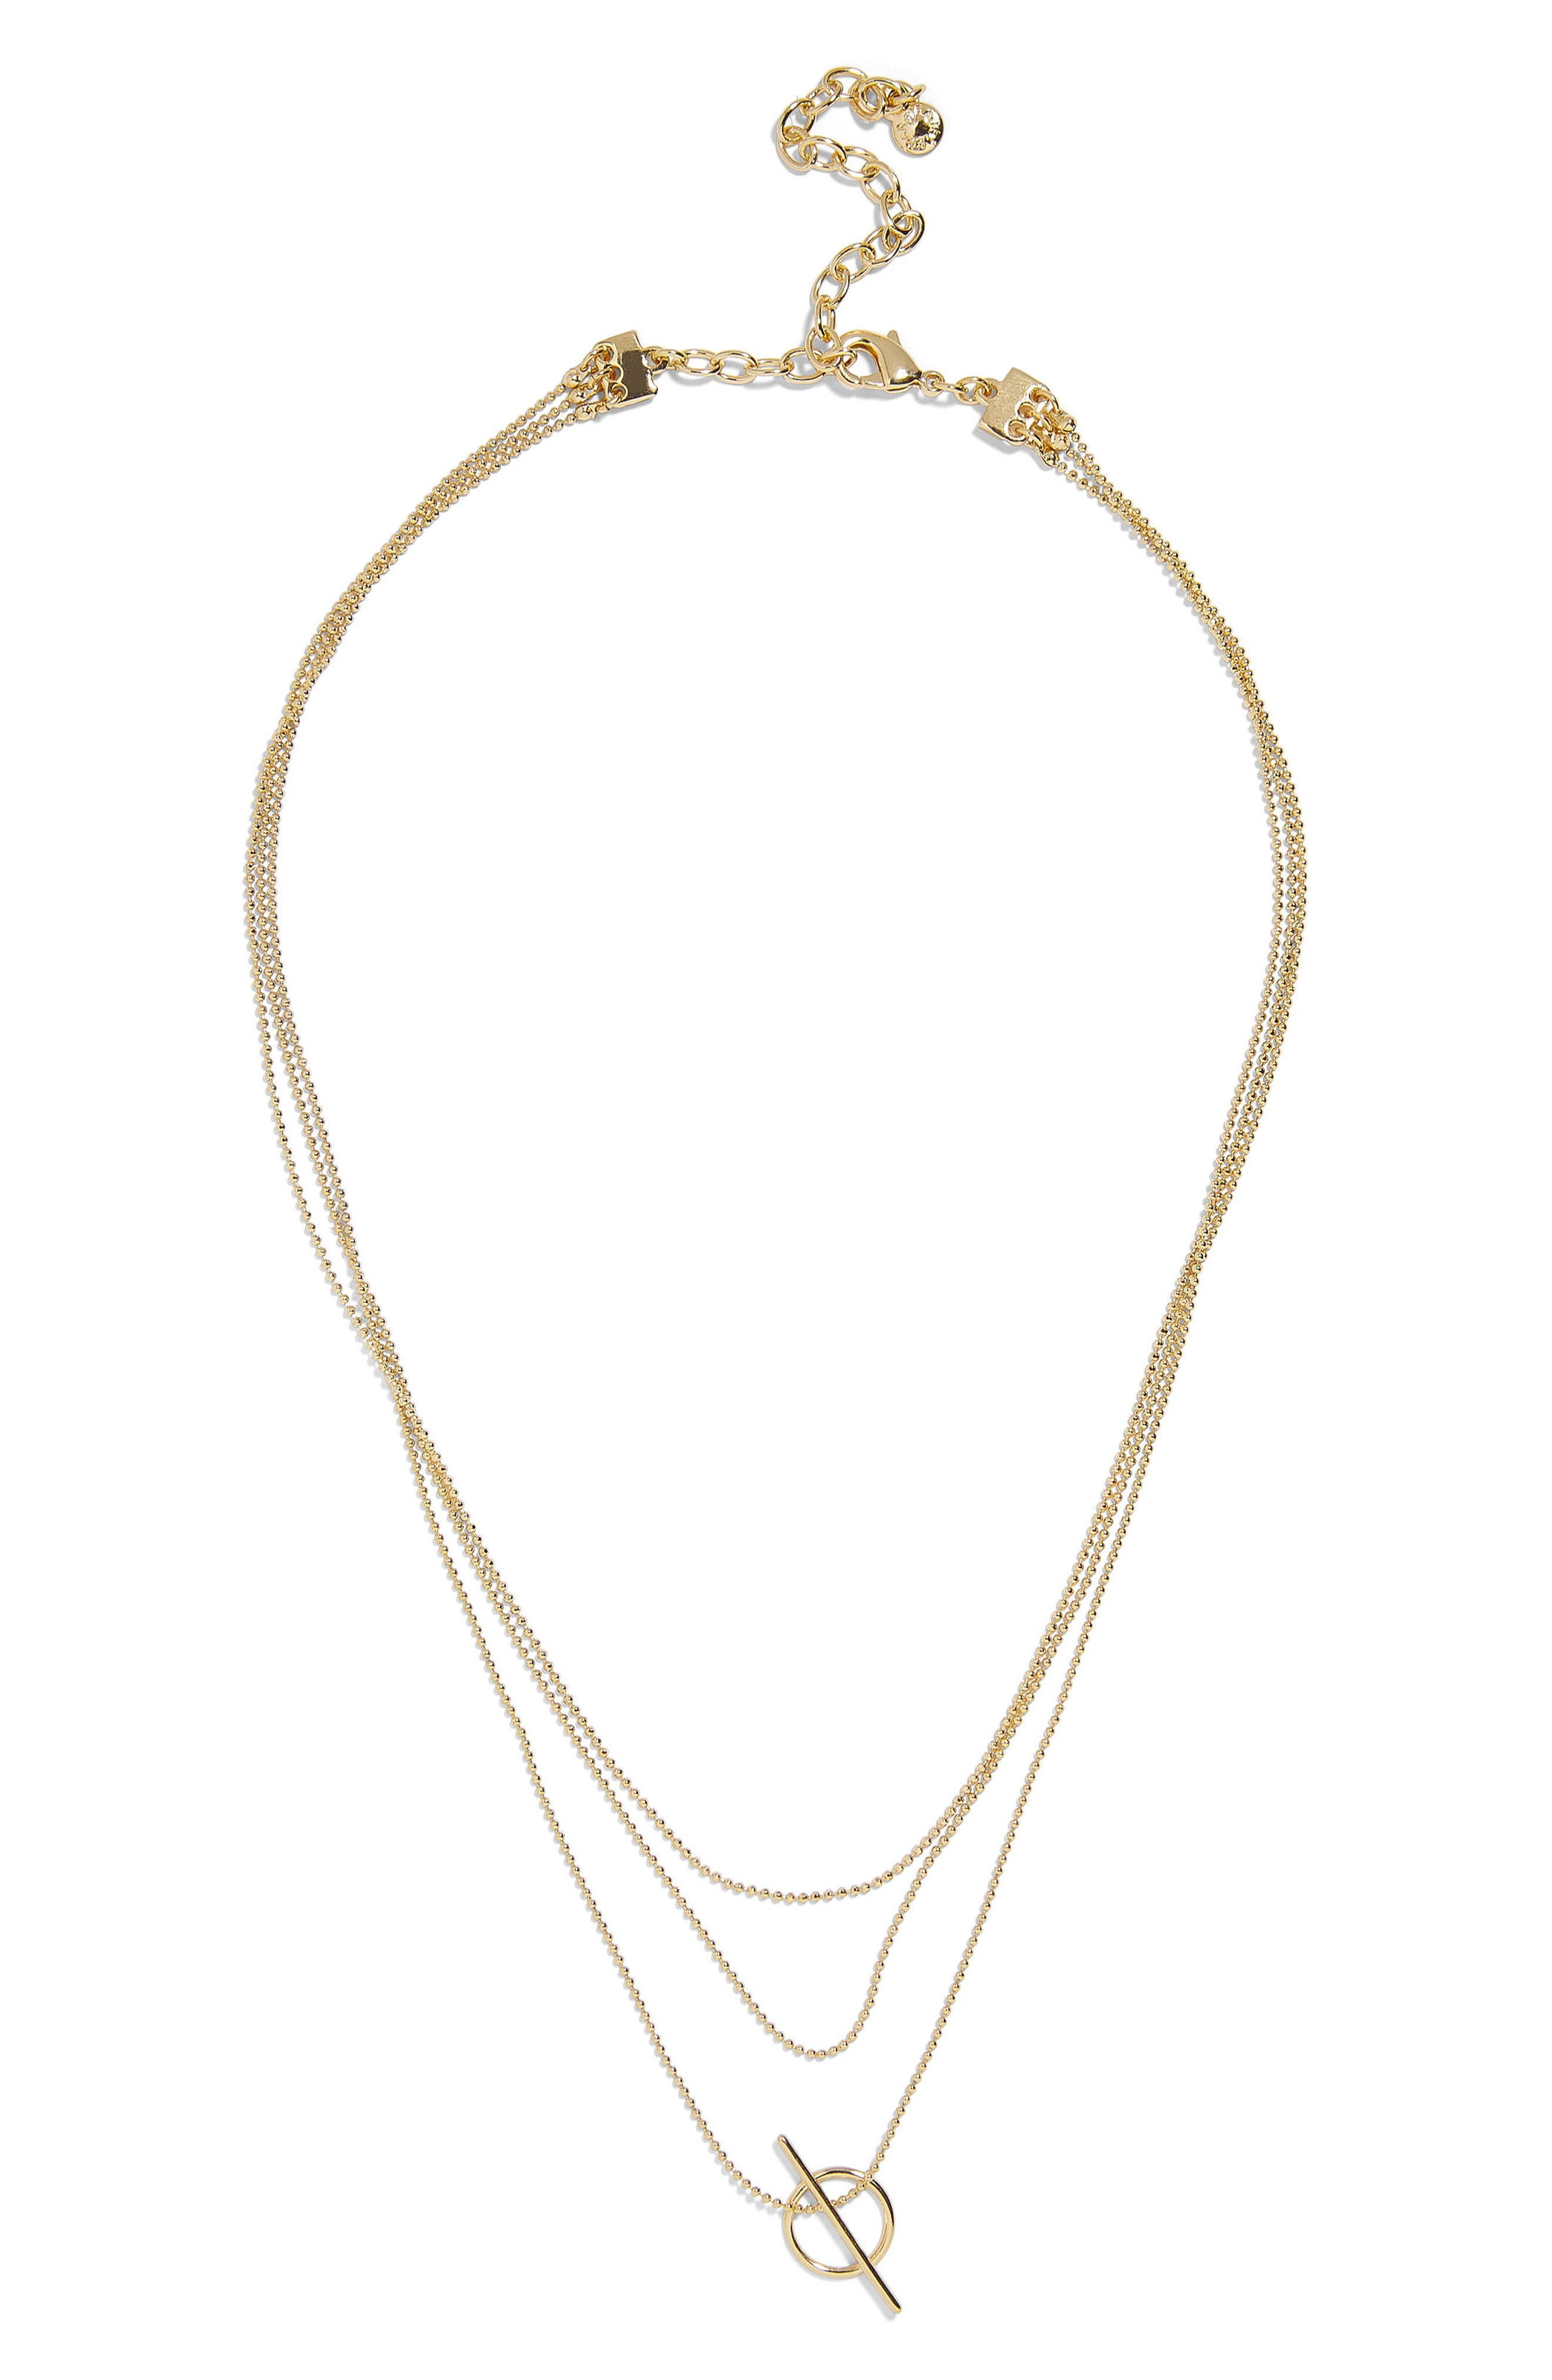 Main Image - BaubleBar Delicate Bead Chain Necklace